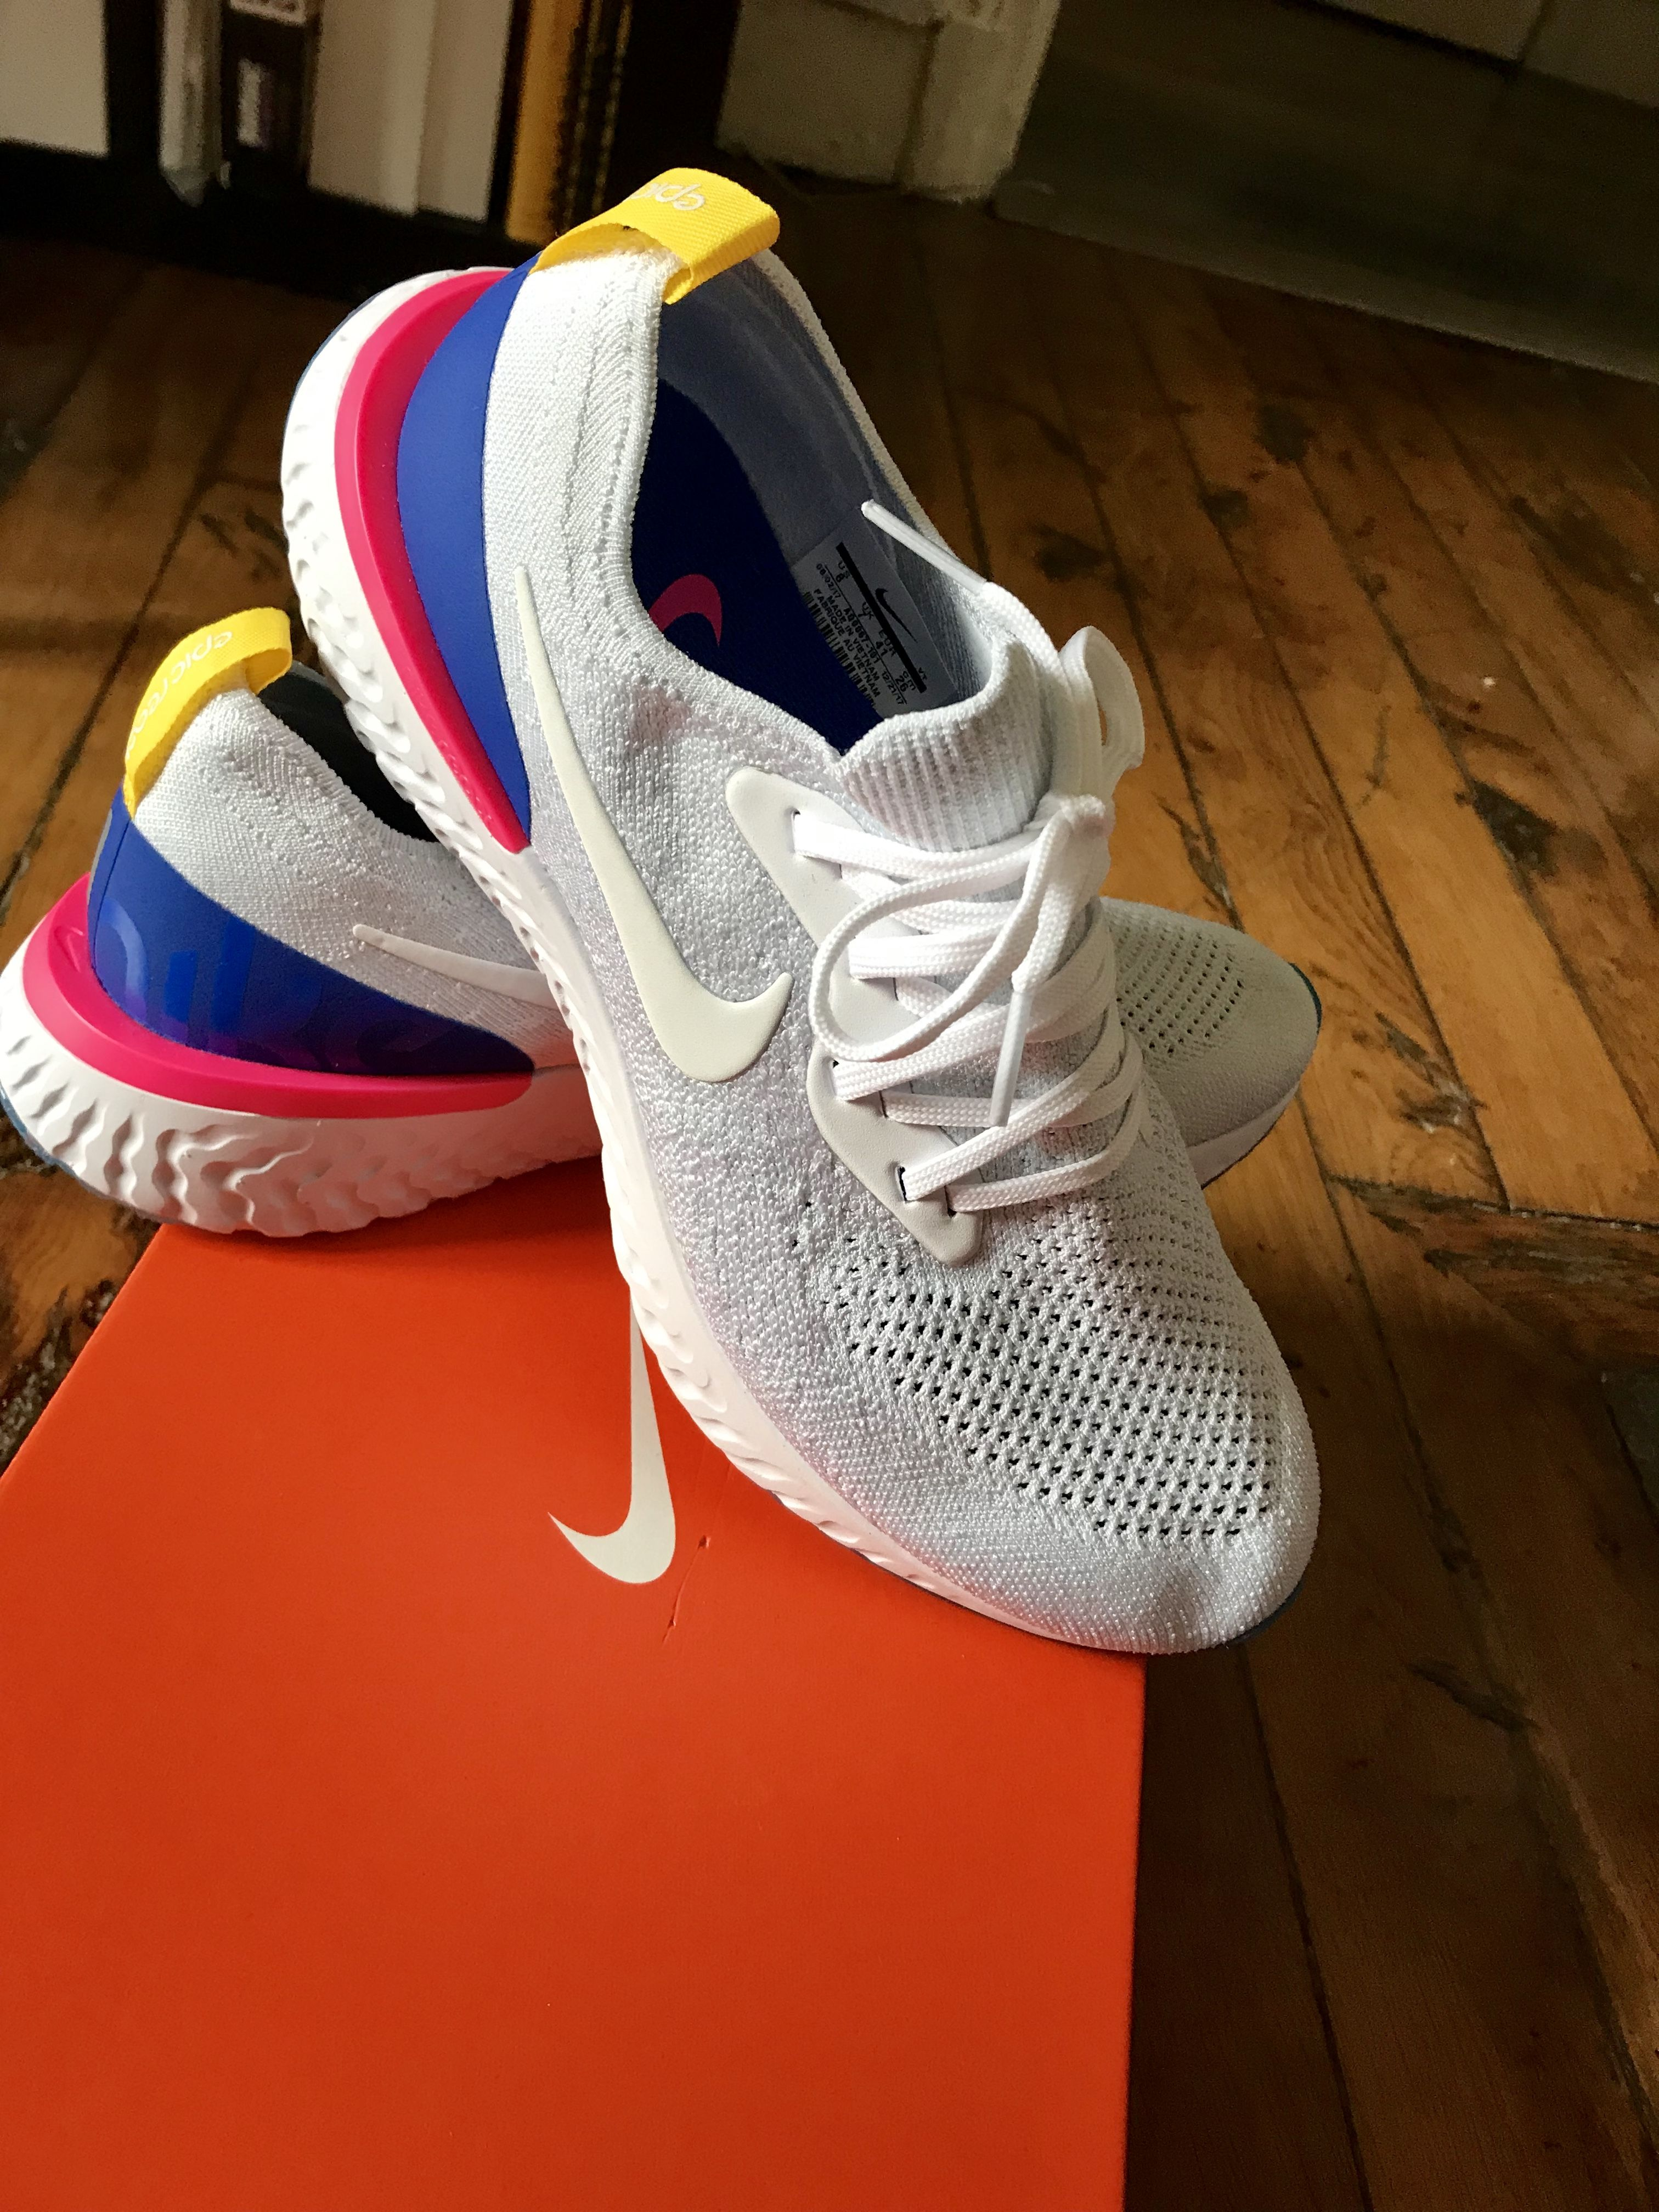 aac13d85ab96 Nike Epic React Flyknit.